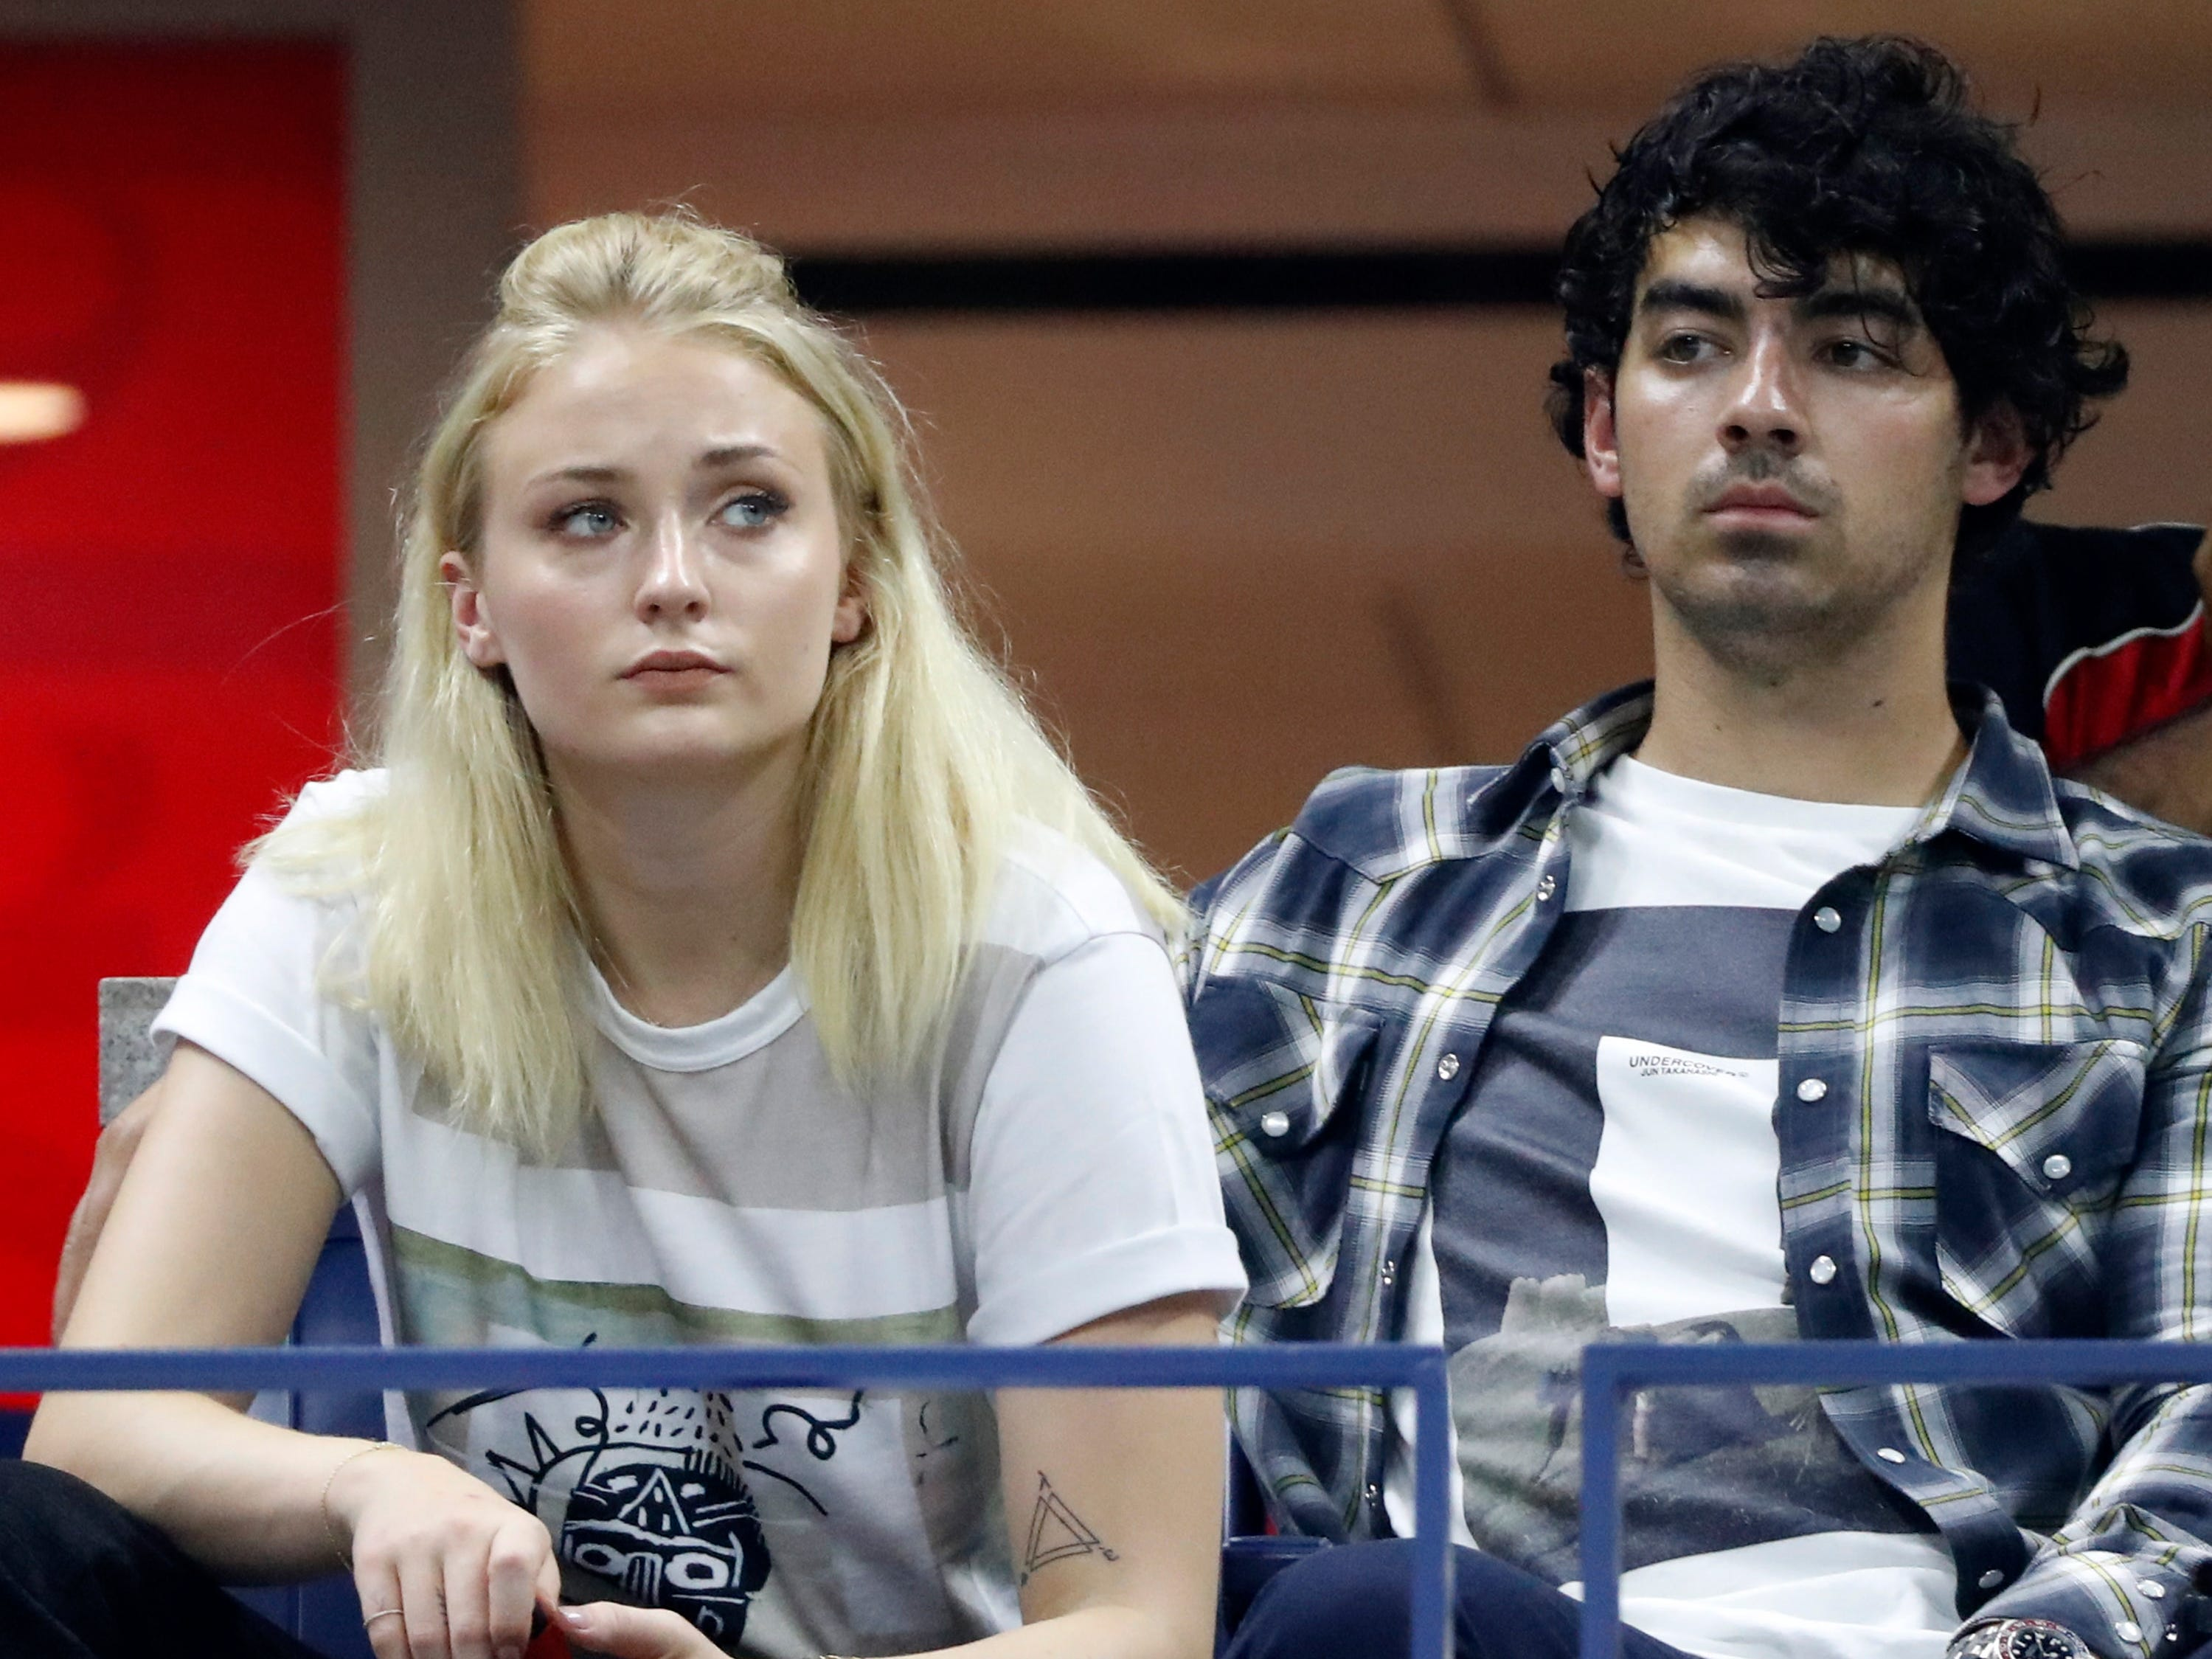 British actress Sophie Turner and singer Joe Jonas watch the Dominic Thiem vs. Rafael Nadal quarterfinal match.